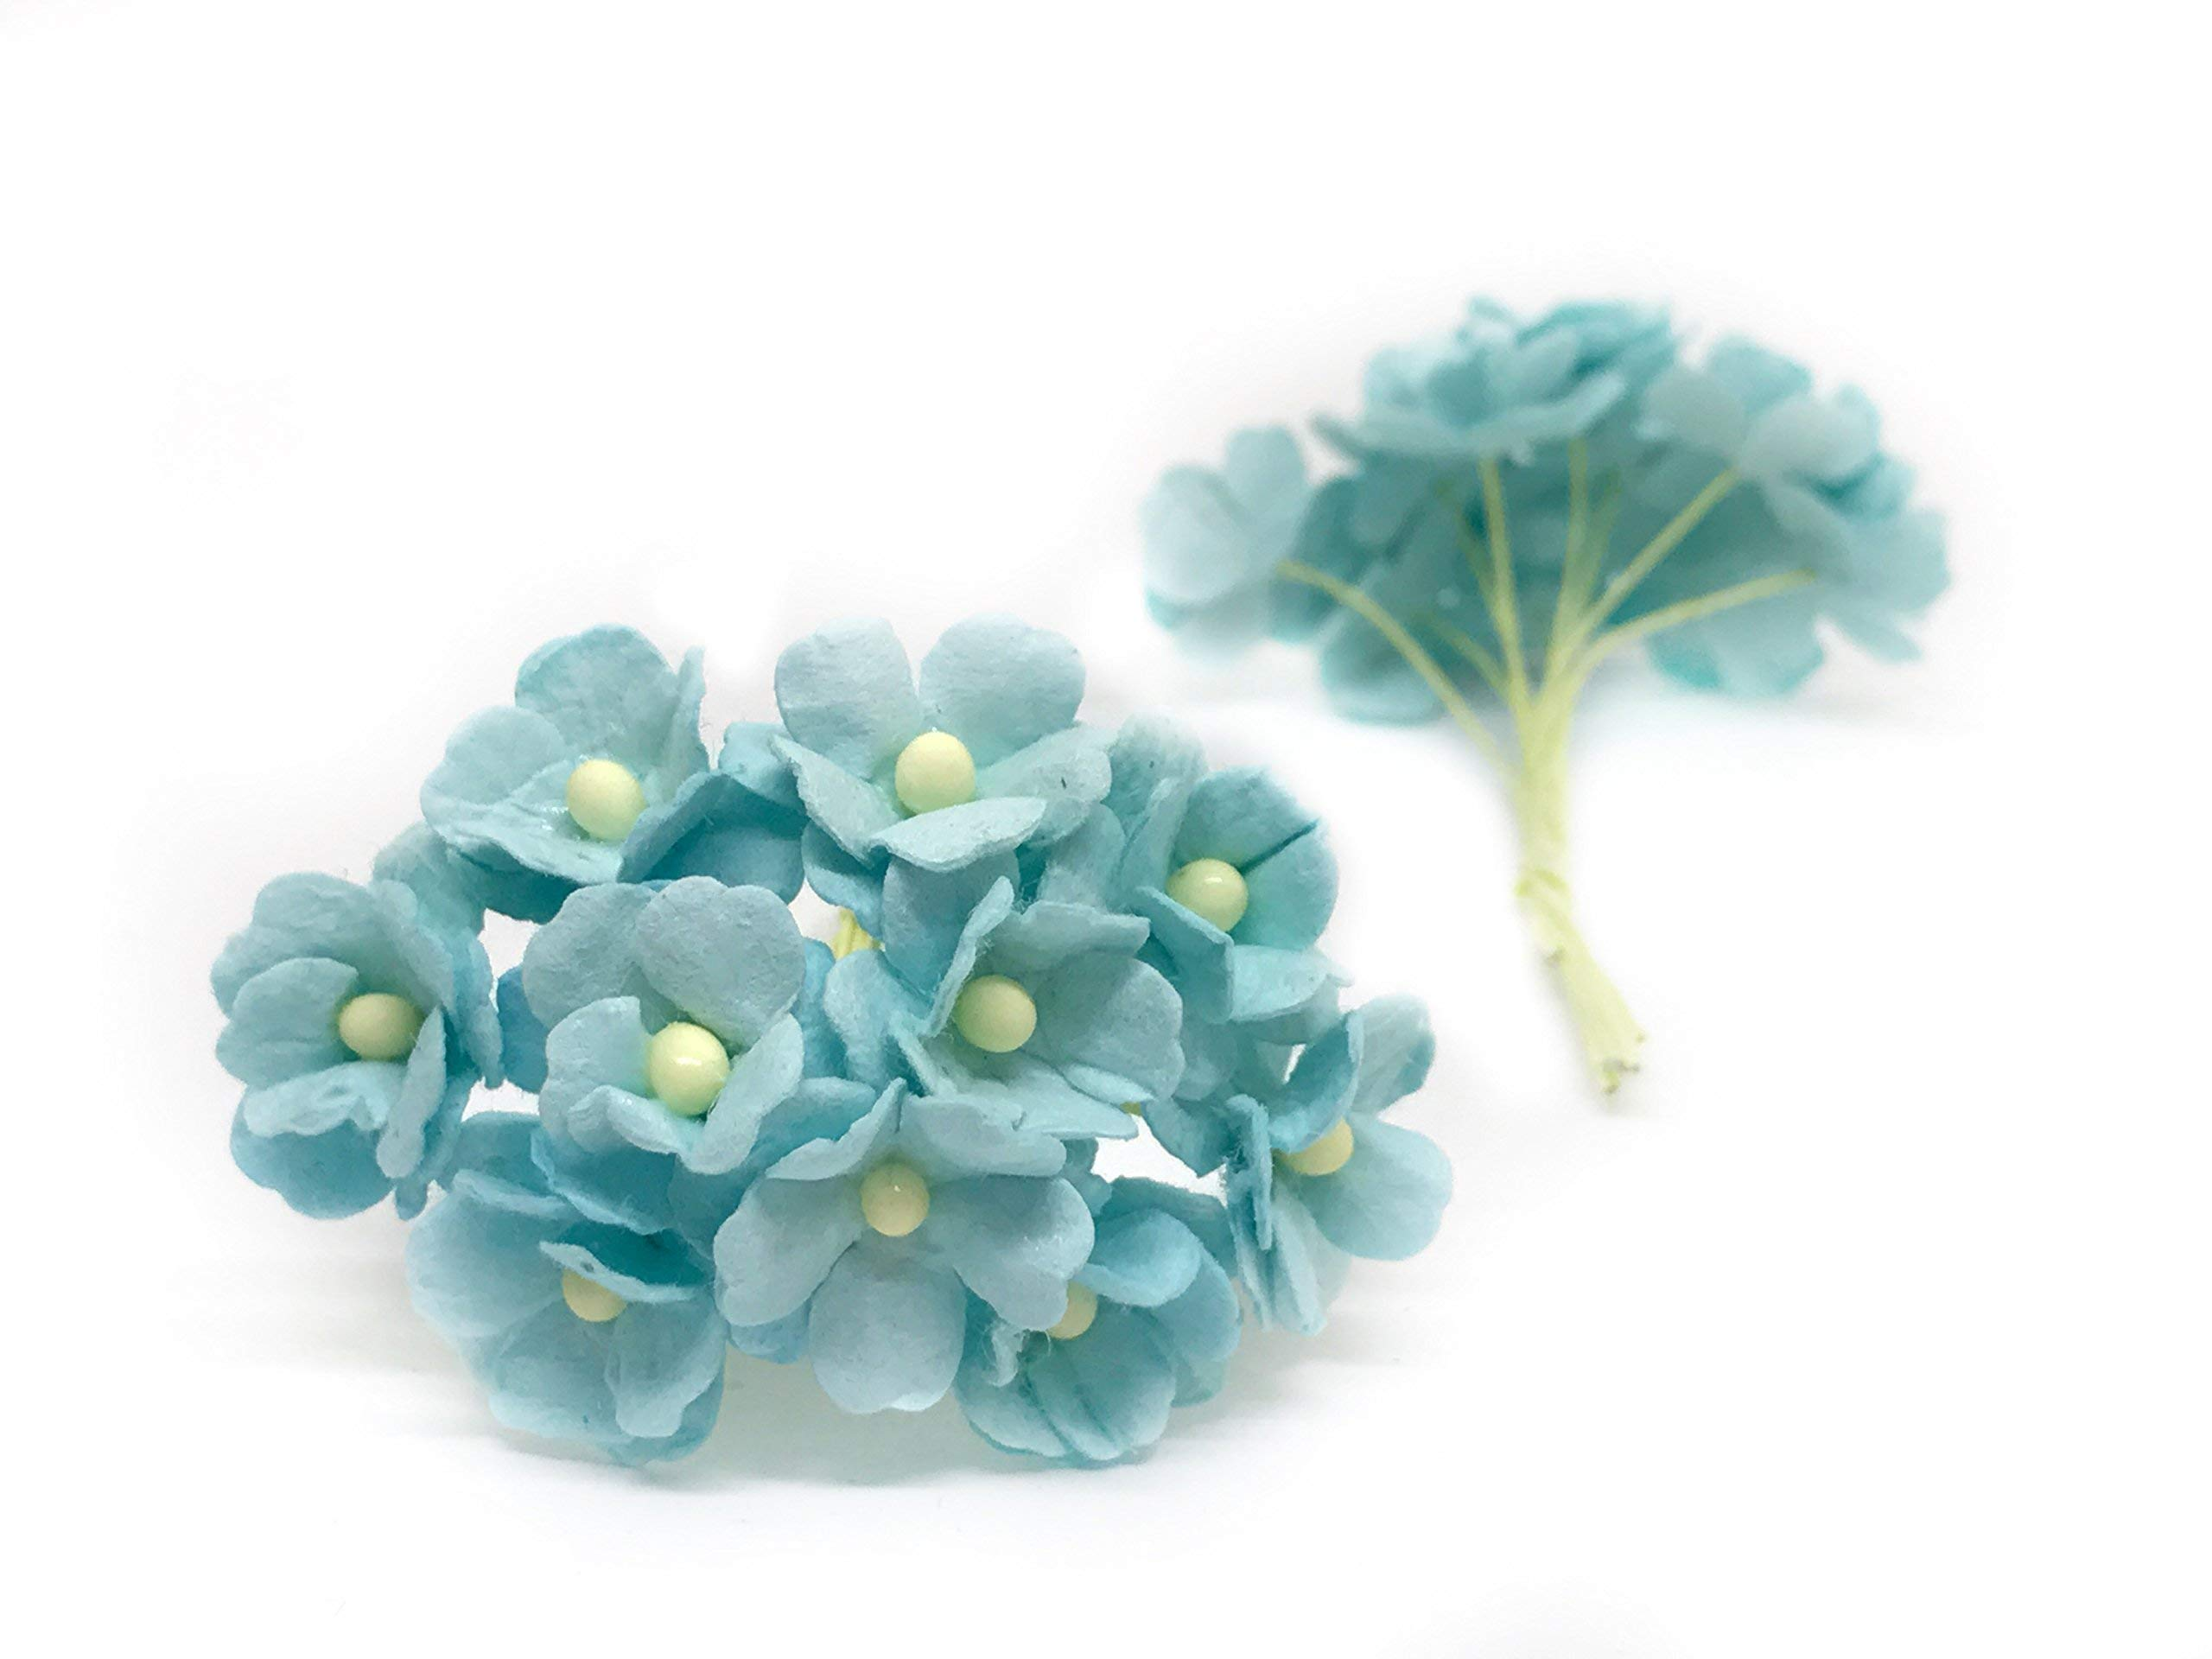 15cm-Turquoise-Mulberry-Paper-Flowers-Turquoise-Paper-Hydrangea-Wedding-Flowers-Wedding-Decor-Wedding-Table-Flowers-Turquoise-Wedding-Artificial-Flowers-50-Pieces